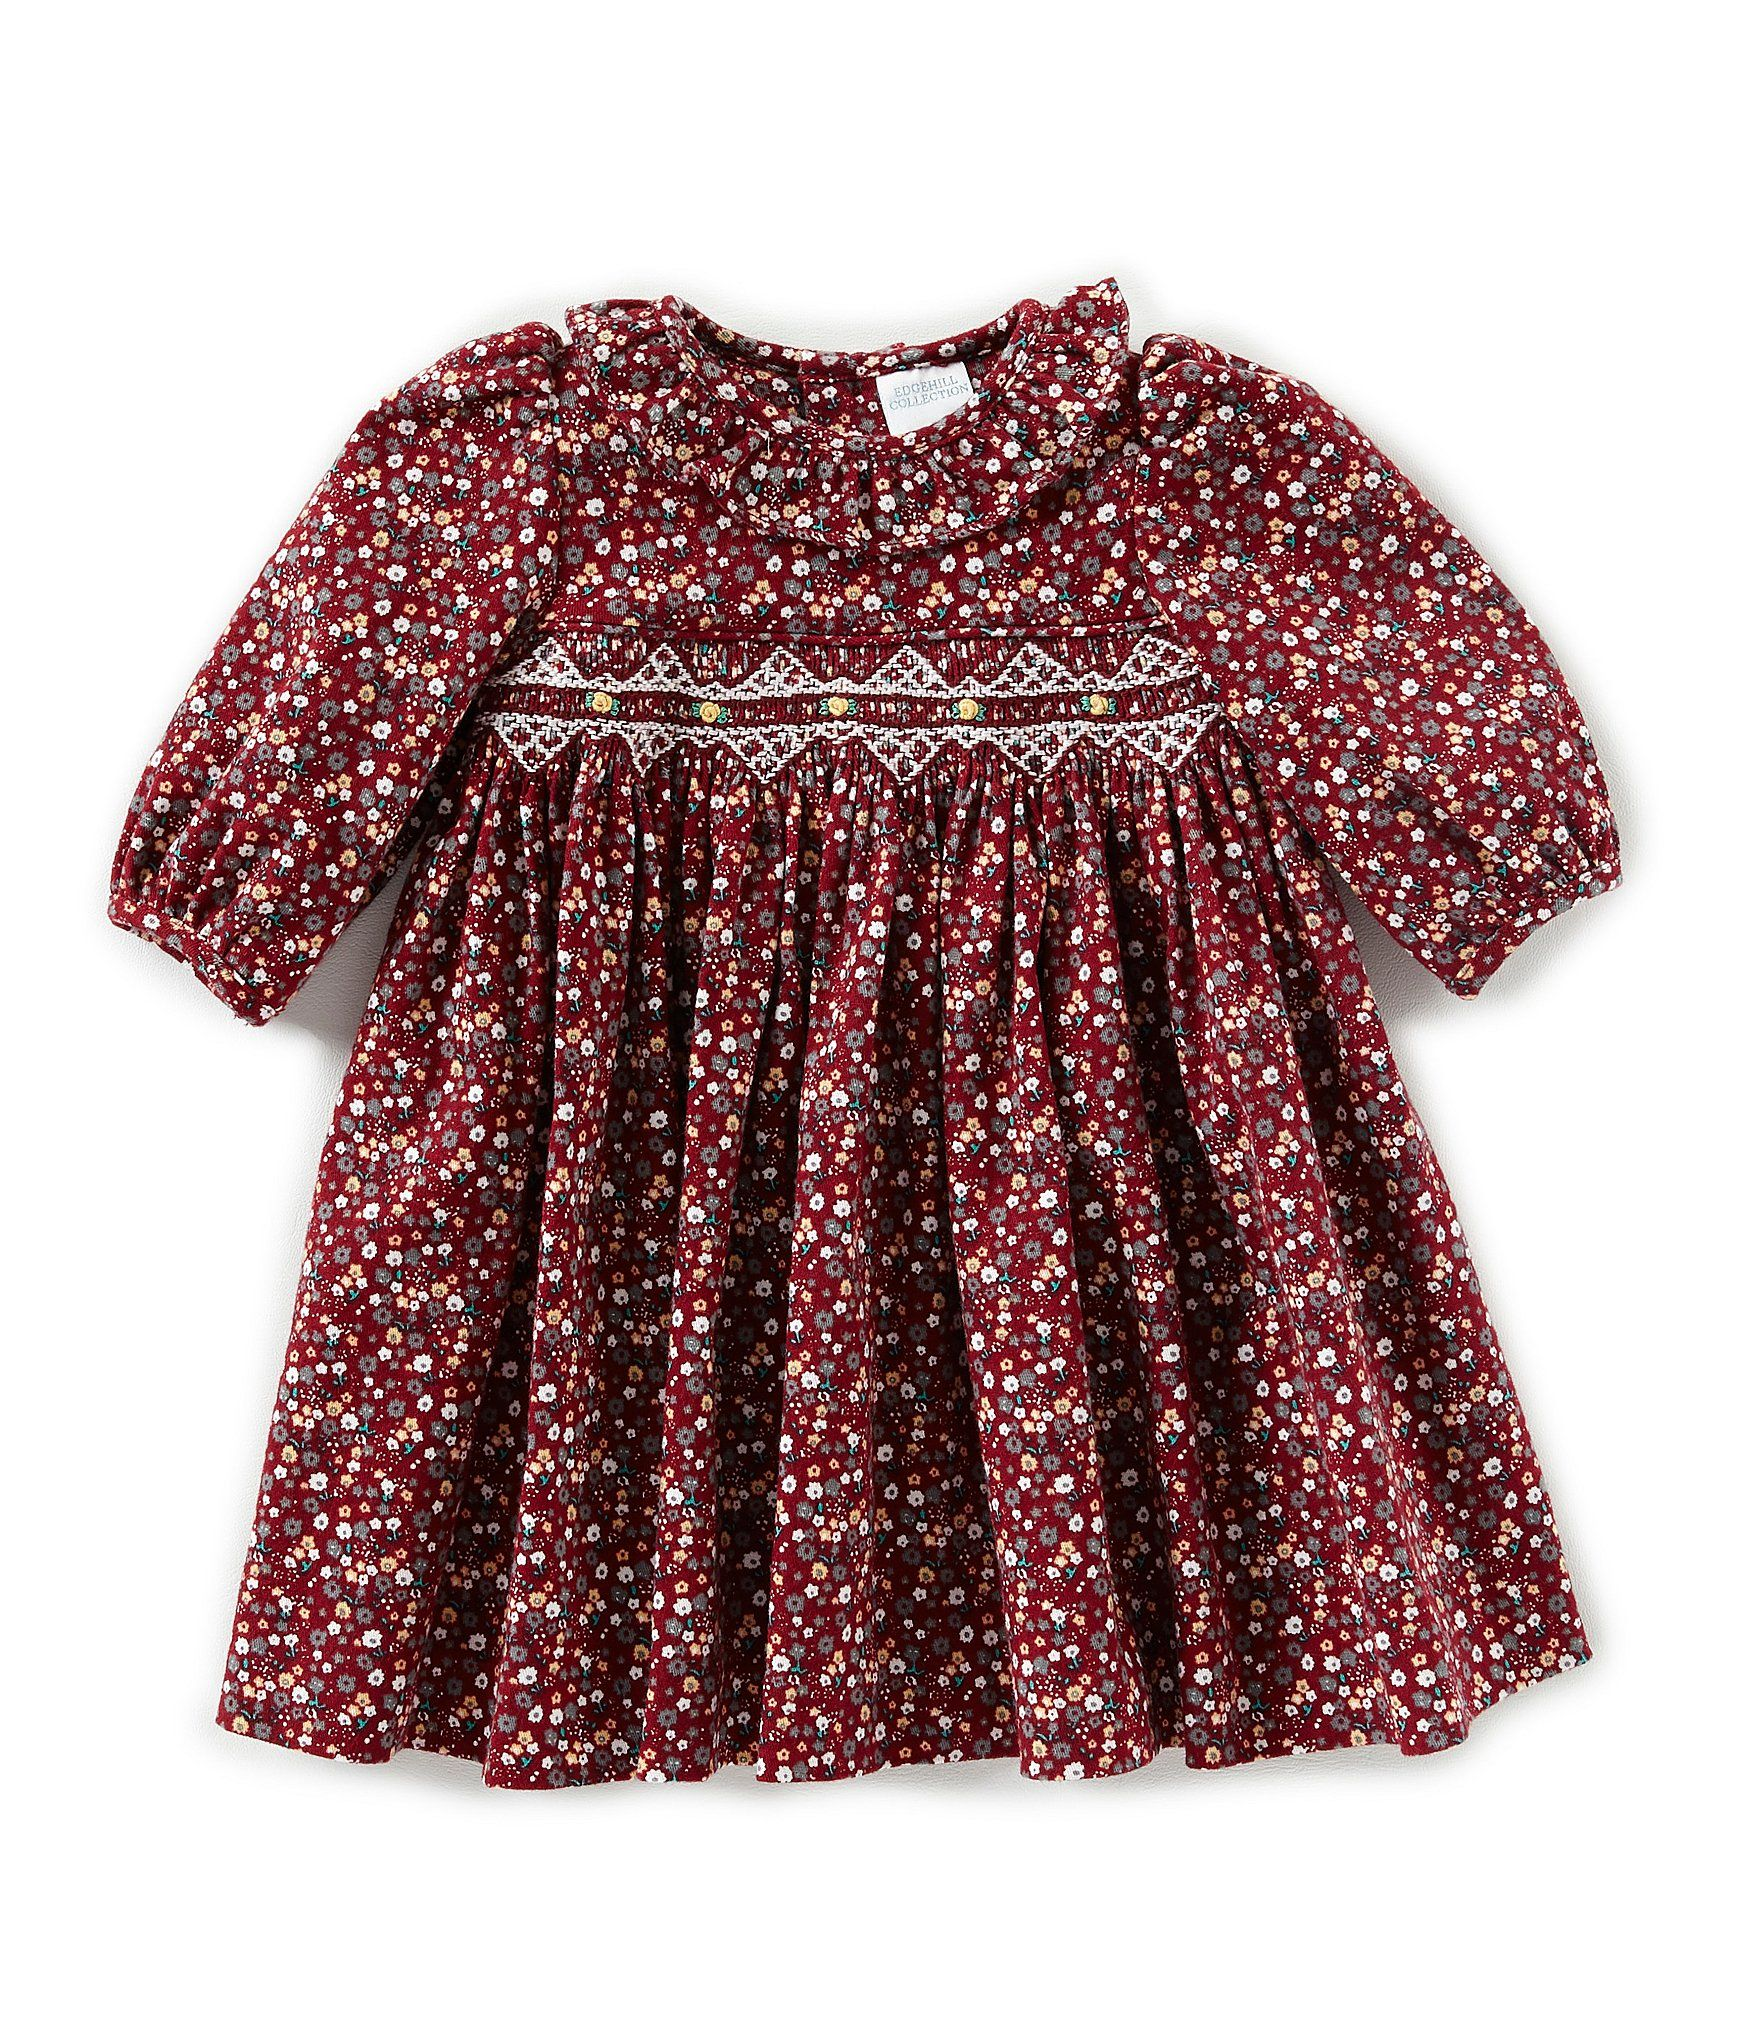 4b8c5b6ad4c Shop for Edgehill Collection Baby Girls 3-24 Months Long Sleeve Floral Top  at Dillards.com. Visit Dillards.com to find clothing